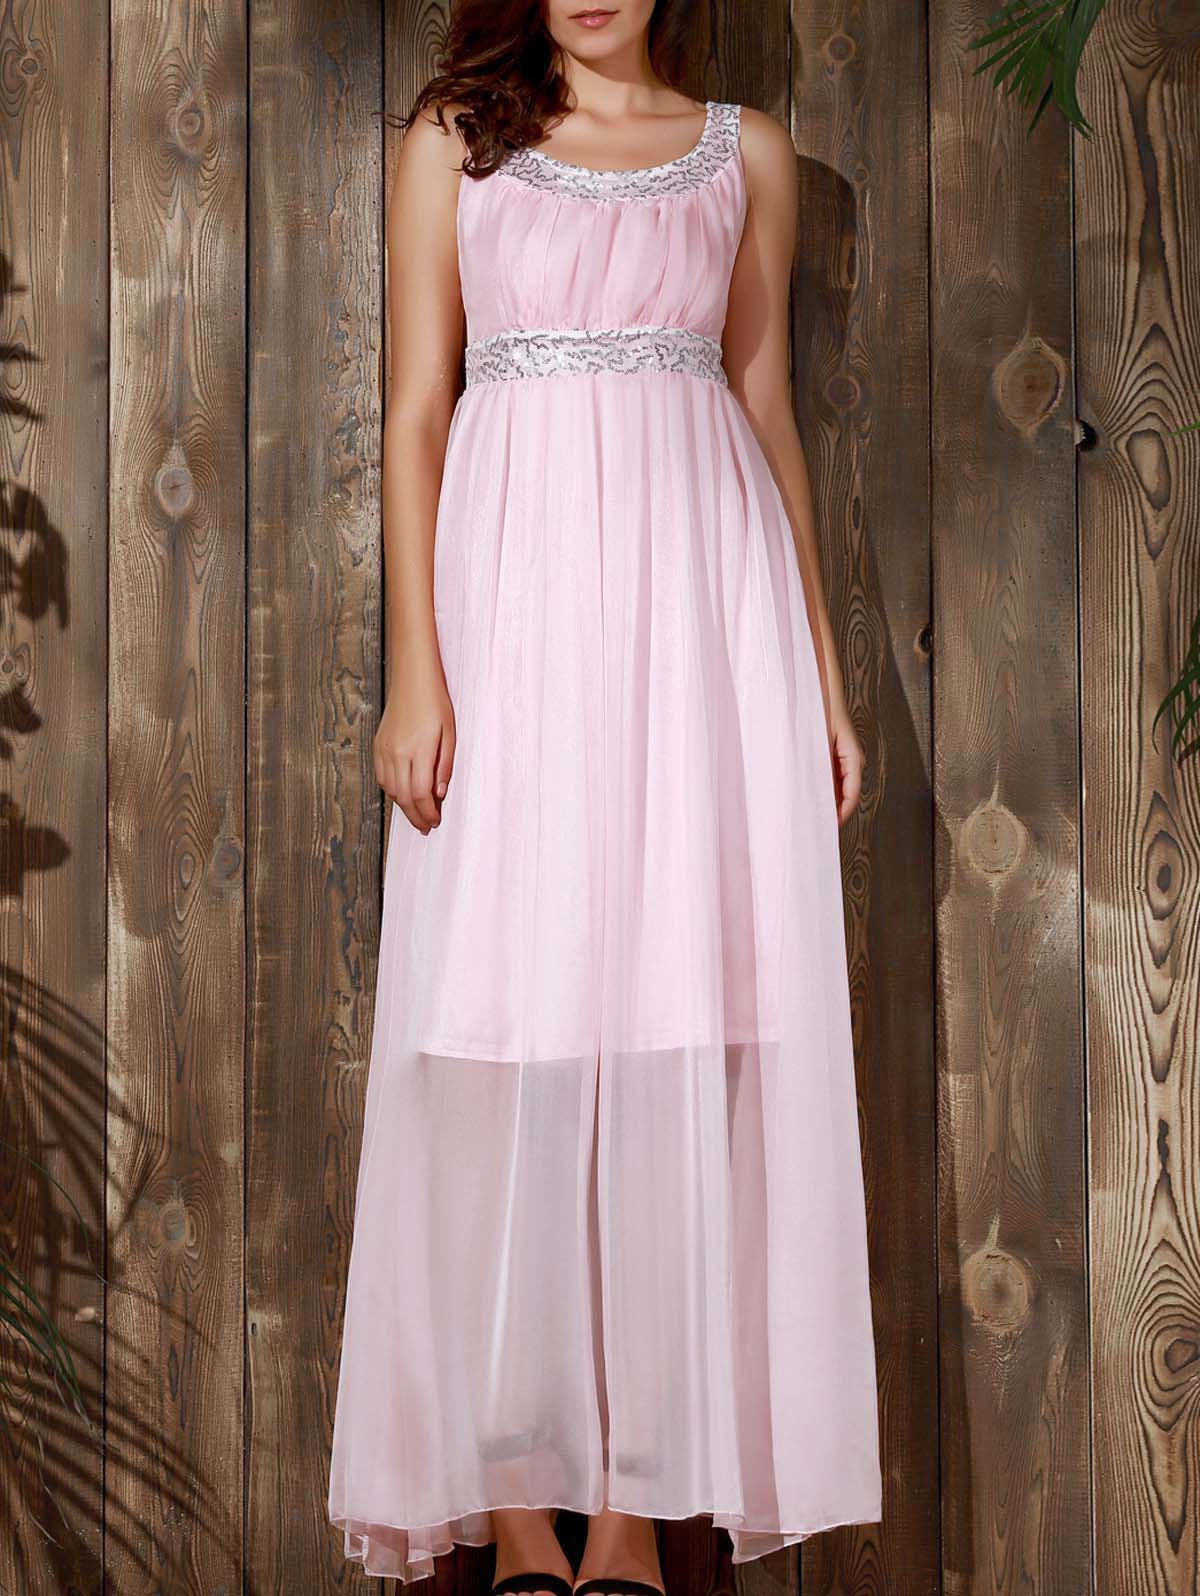 Stylish U-Neck Sleeveless Spliced Sequined Women's Dress - S PINK